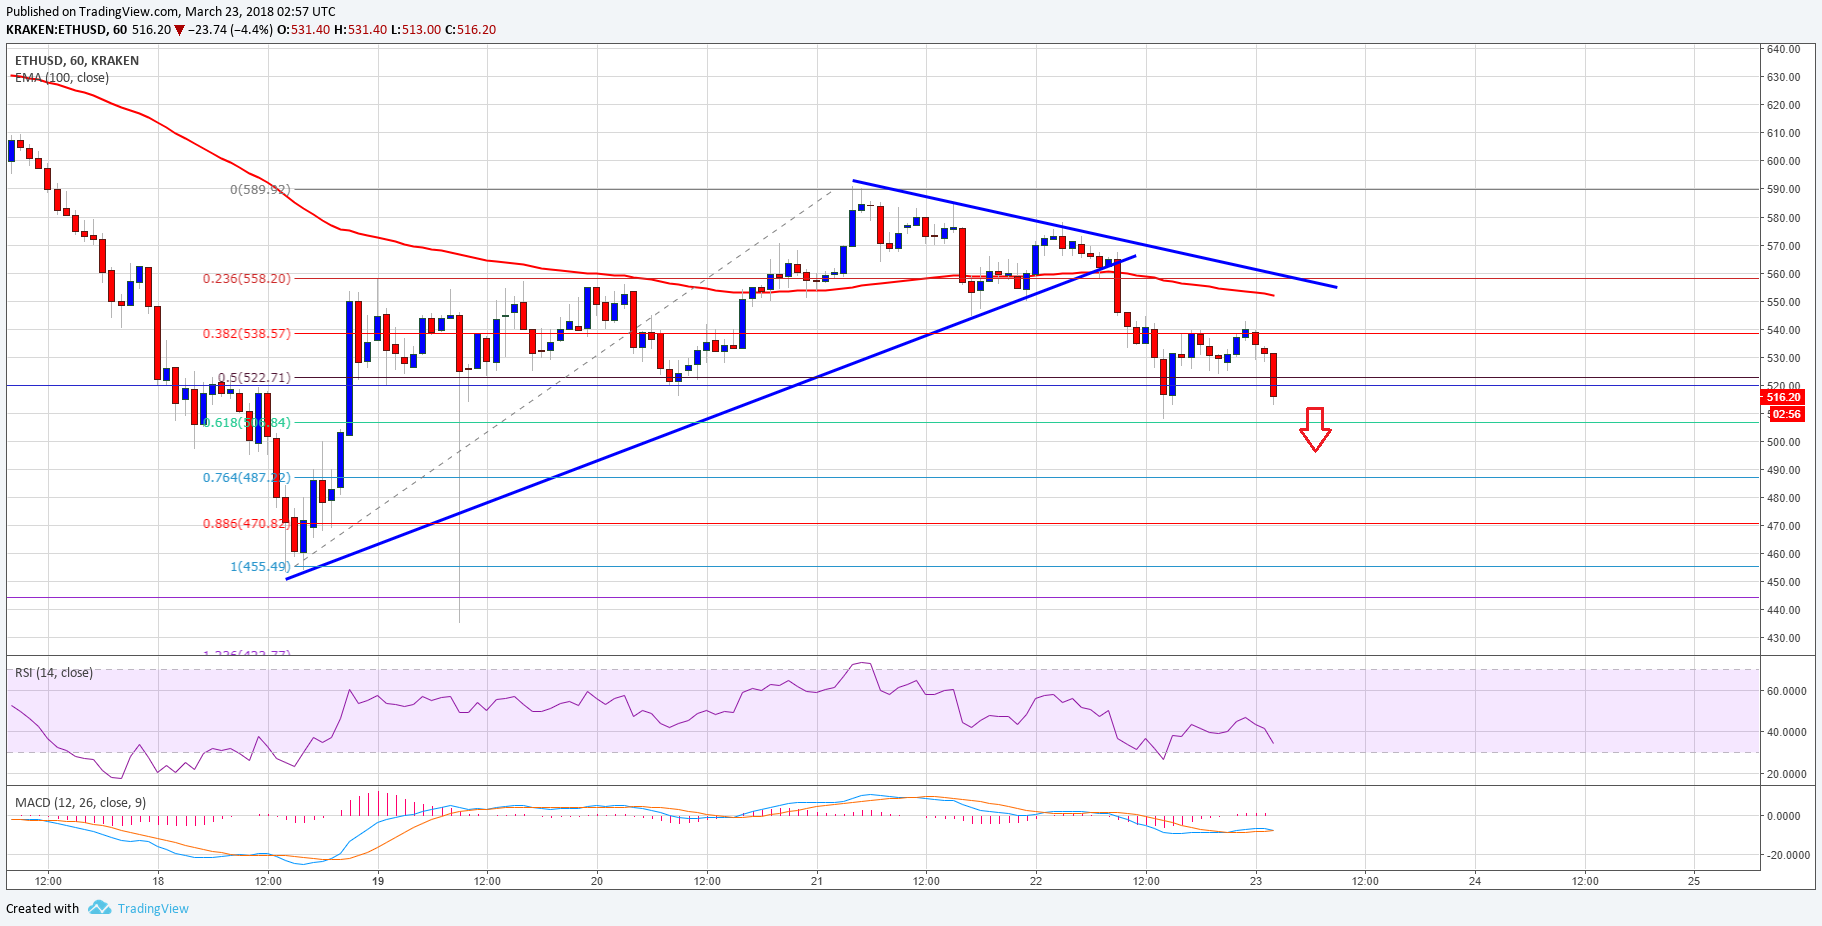 Ethereum Price Technical Analysis – ETH/USD Could Break $500